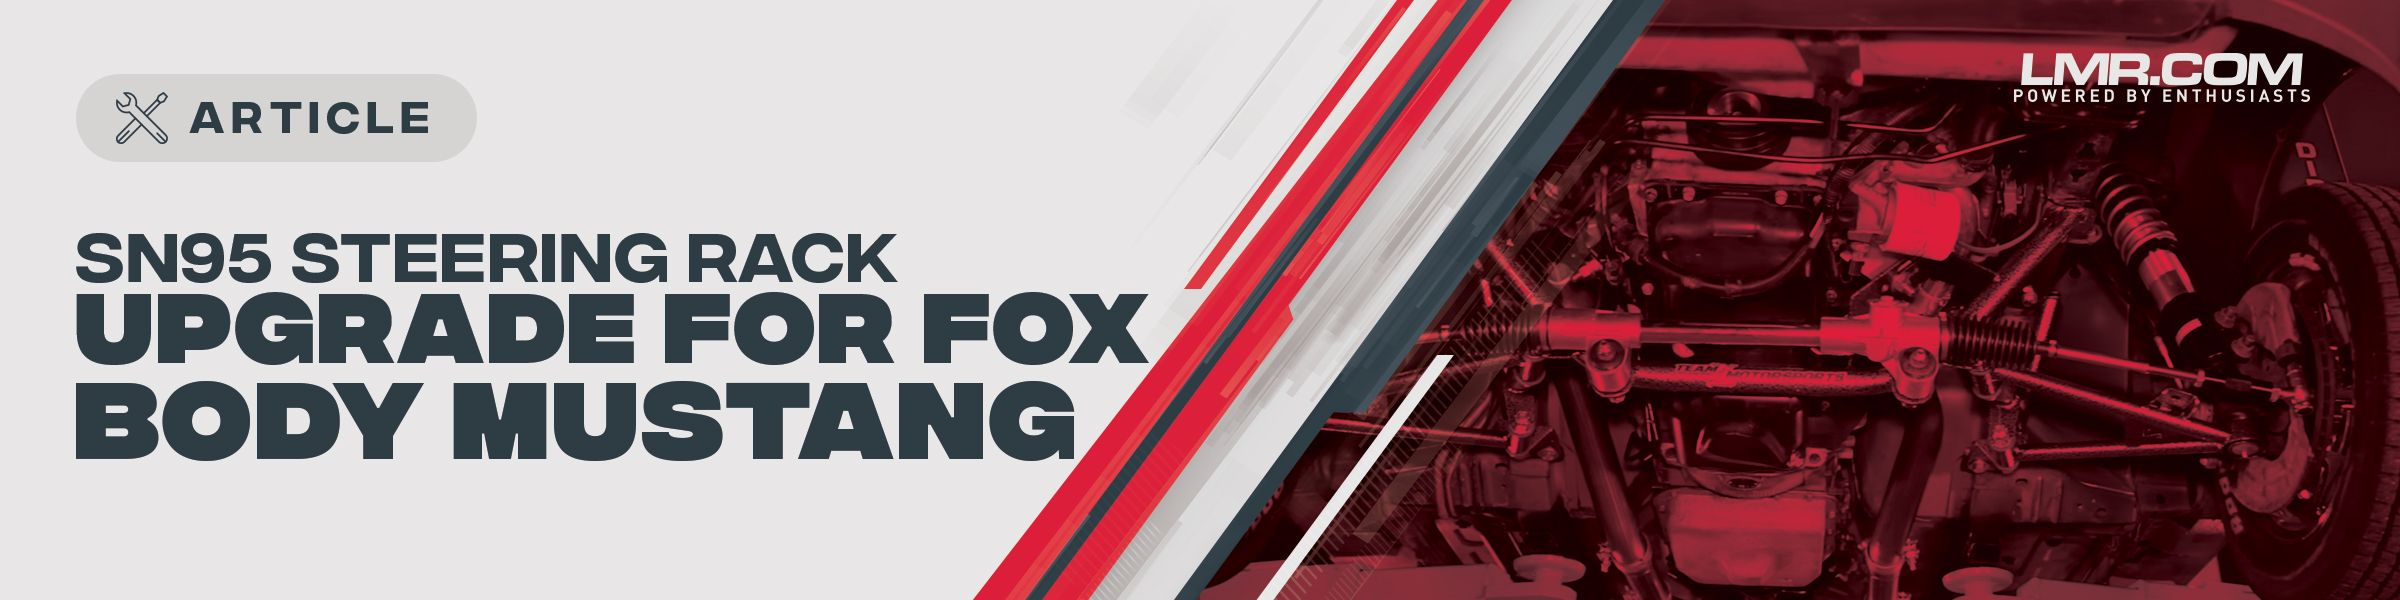 SN95 Steering Rack Upgrade | Fox Body Mustang - SN95 Steering Rack Upgrade | Fox Body Mustang